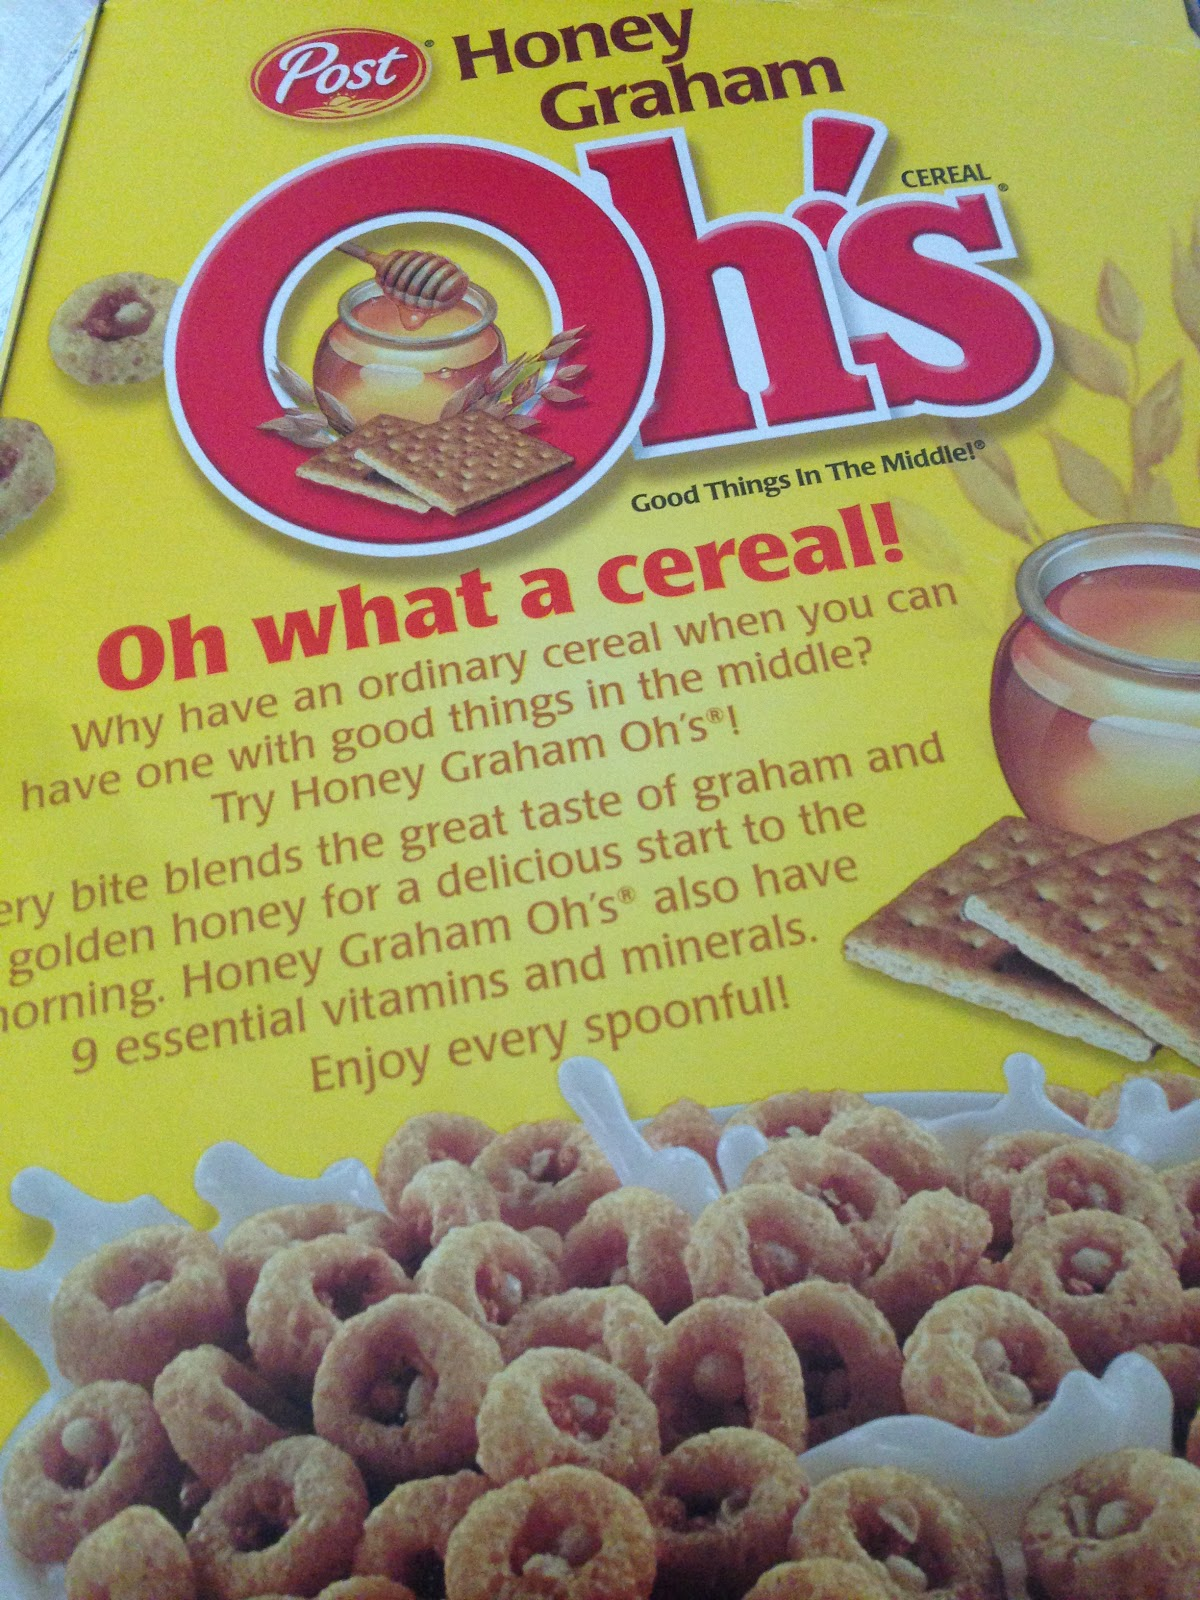 Oh my review post honey graham ohs you being cereal overall i really enjoy post honey graham ohs im not quite sure about their claim good things in the middle personally i see some circular sprinkles ccuart Choice Image